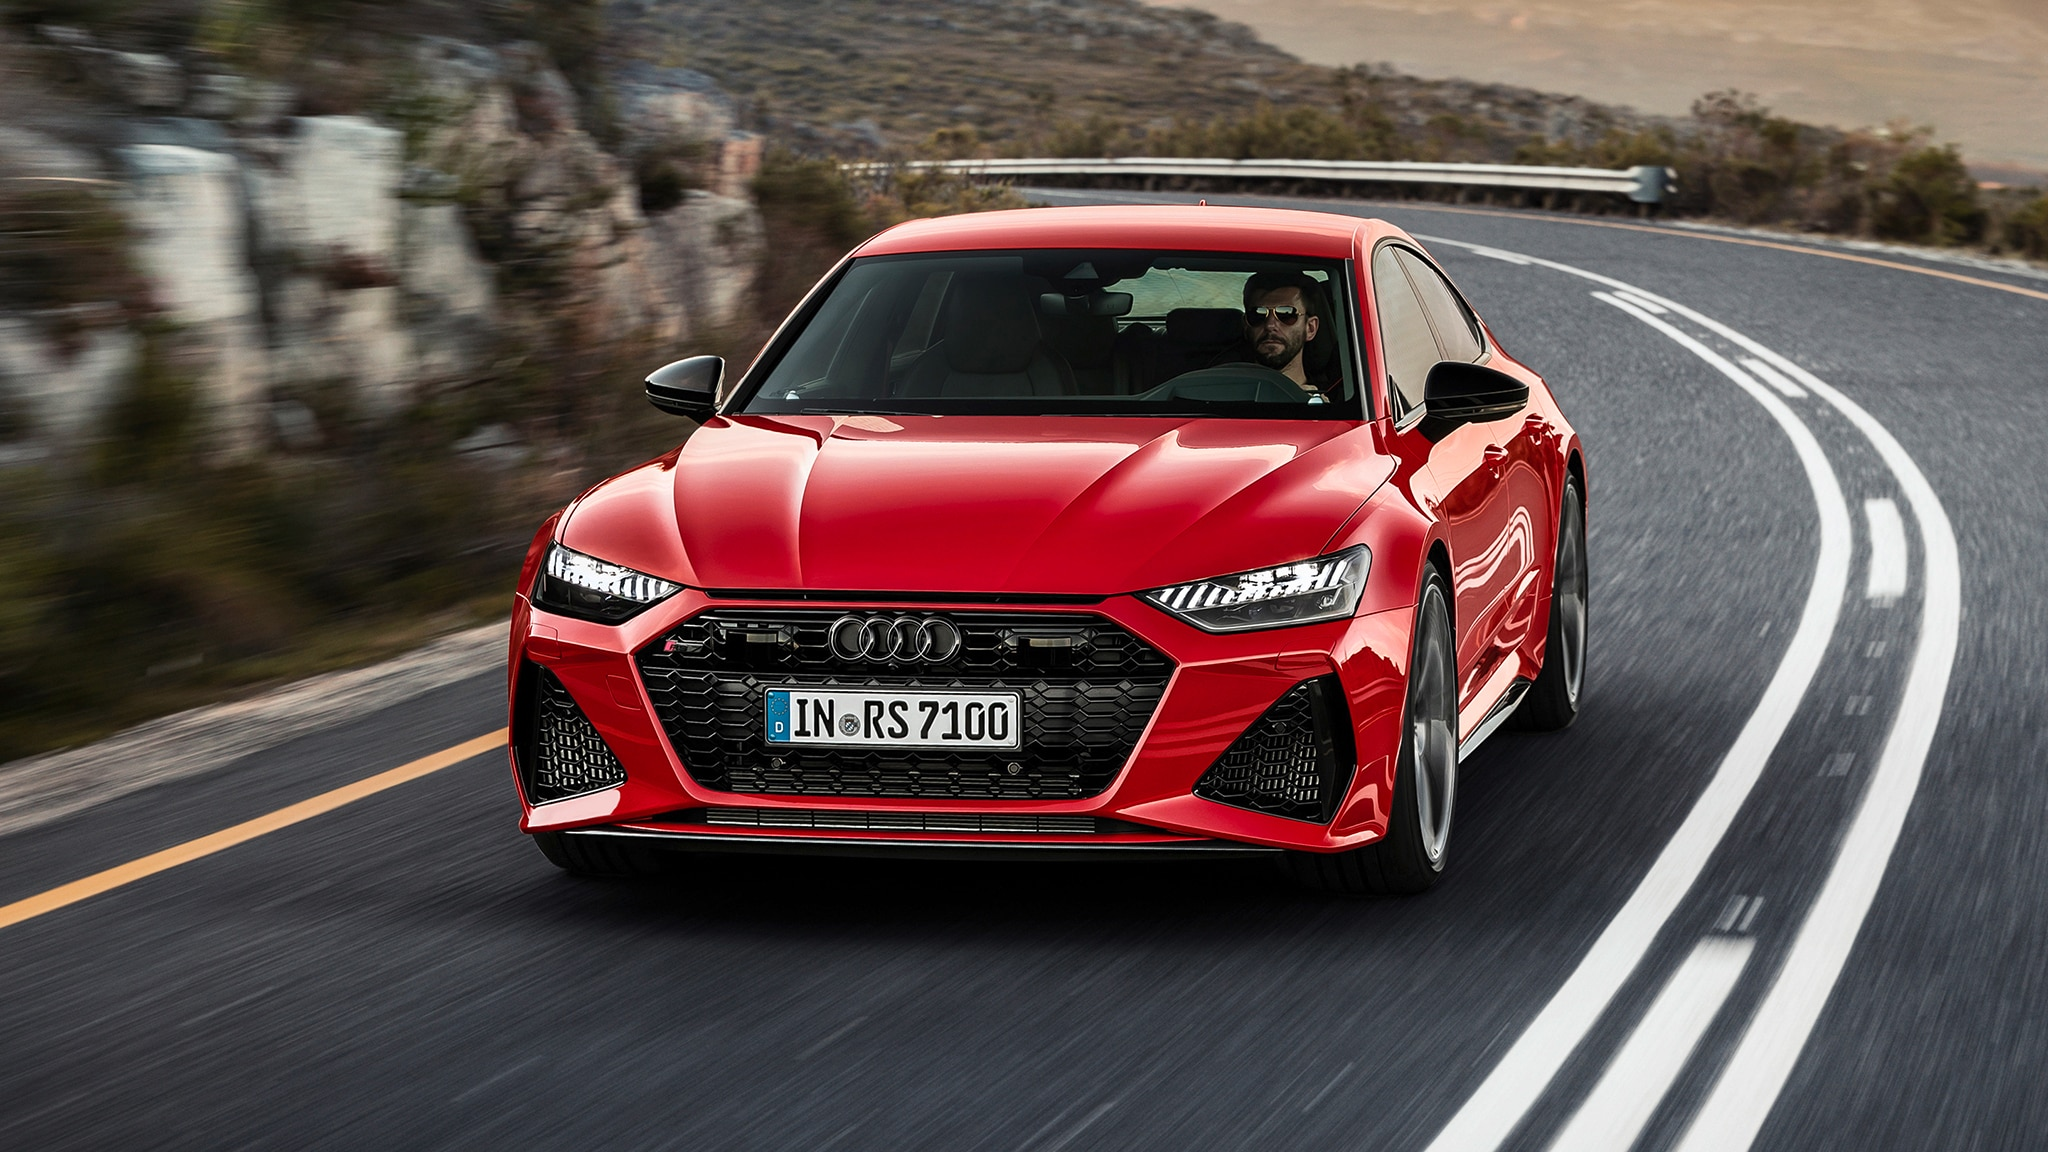 Ram Ecodiesel Review >> 2020 Audi RS7 First Drive Review: A Fearsome Hellsled ...